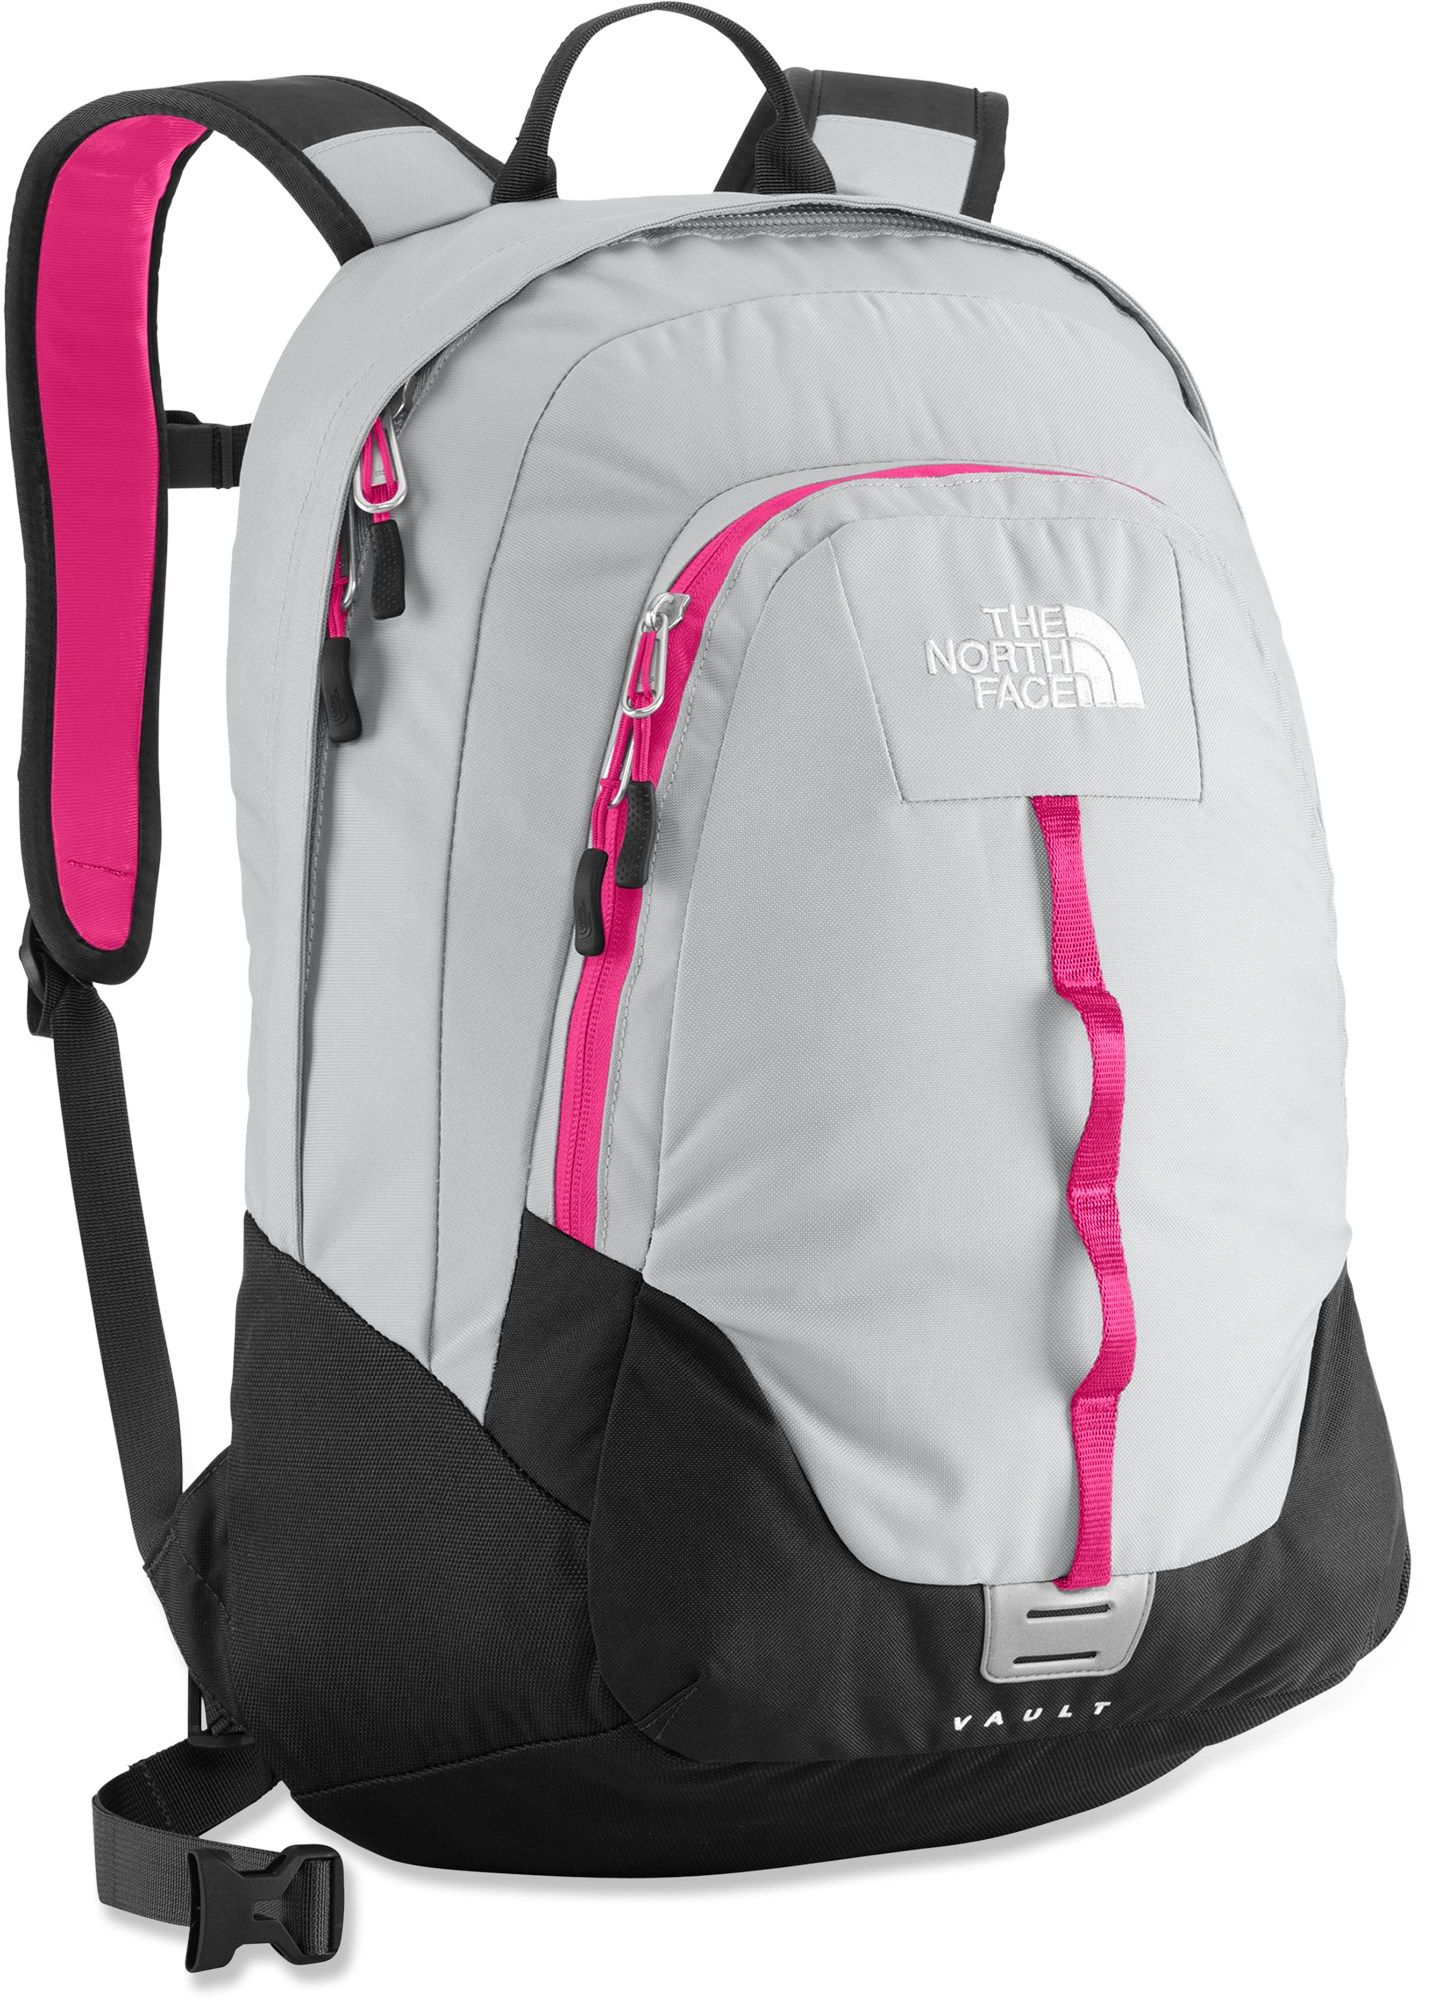 bb14d42b0 The North Face Vault Daypack - Women's - 2013 Closeout Specs Specification  Description Best use Casual